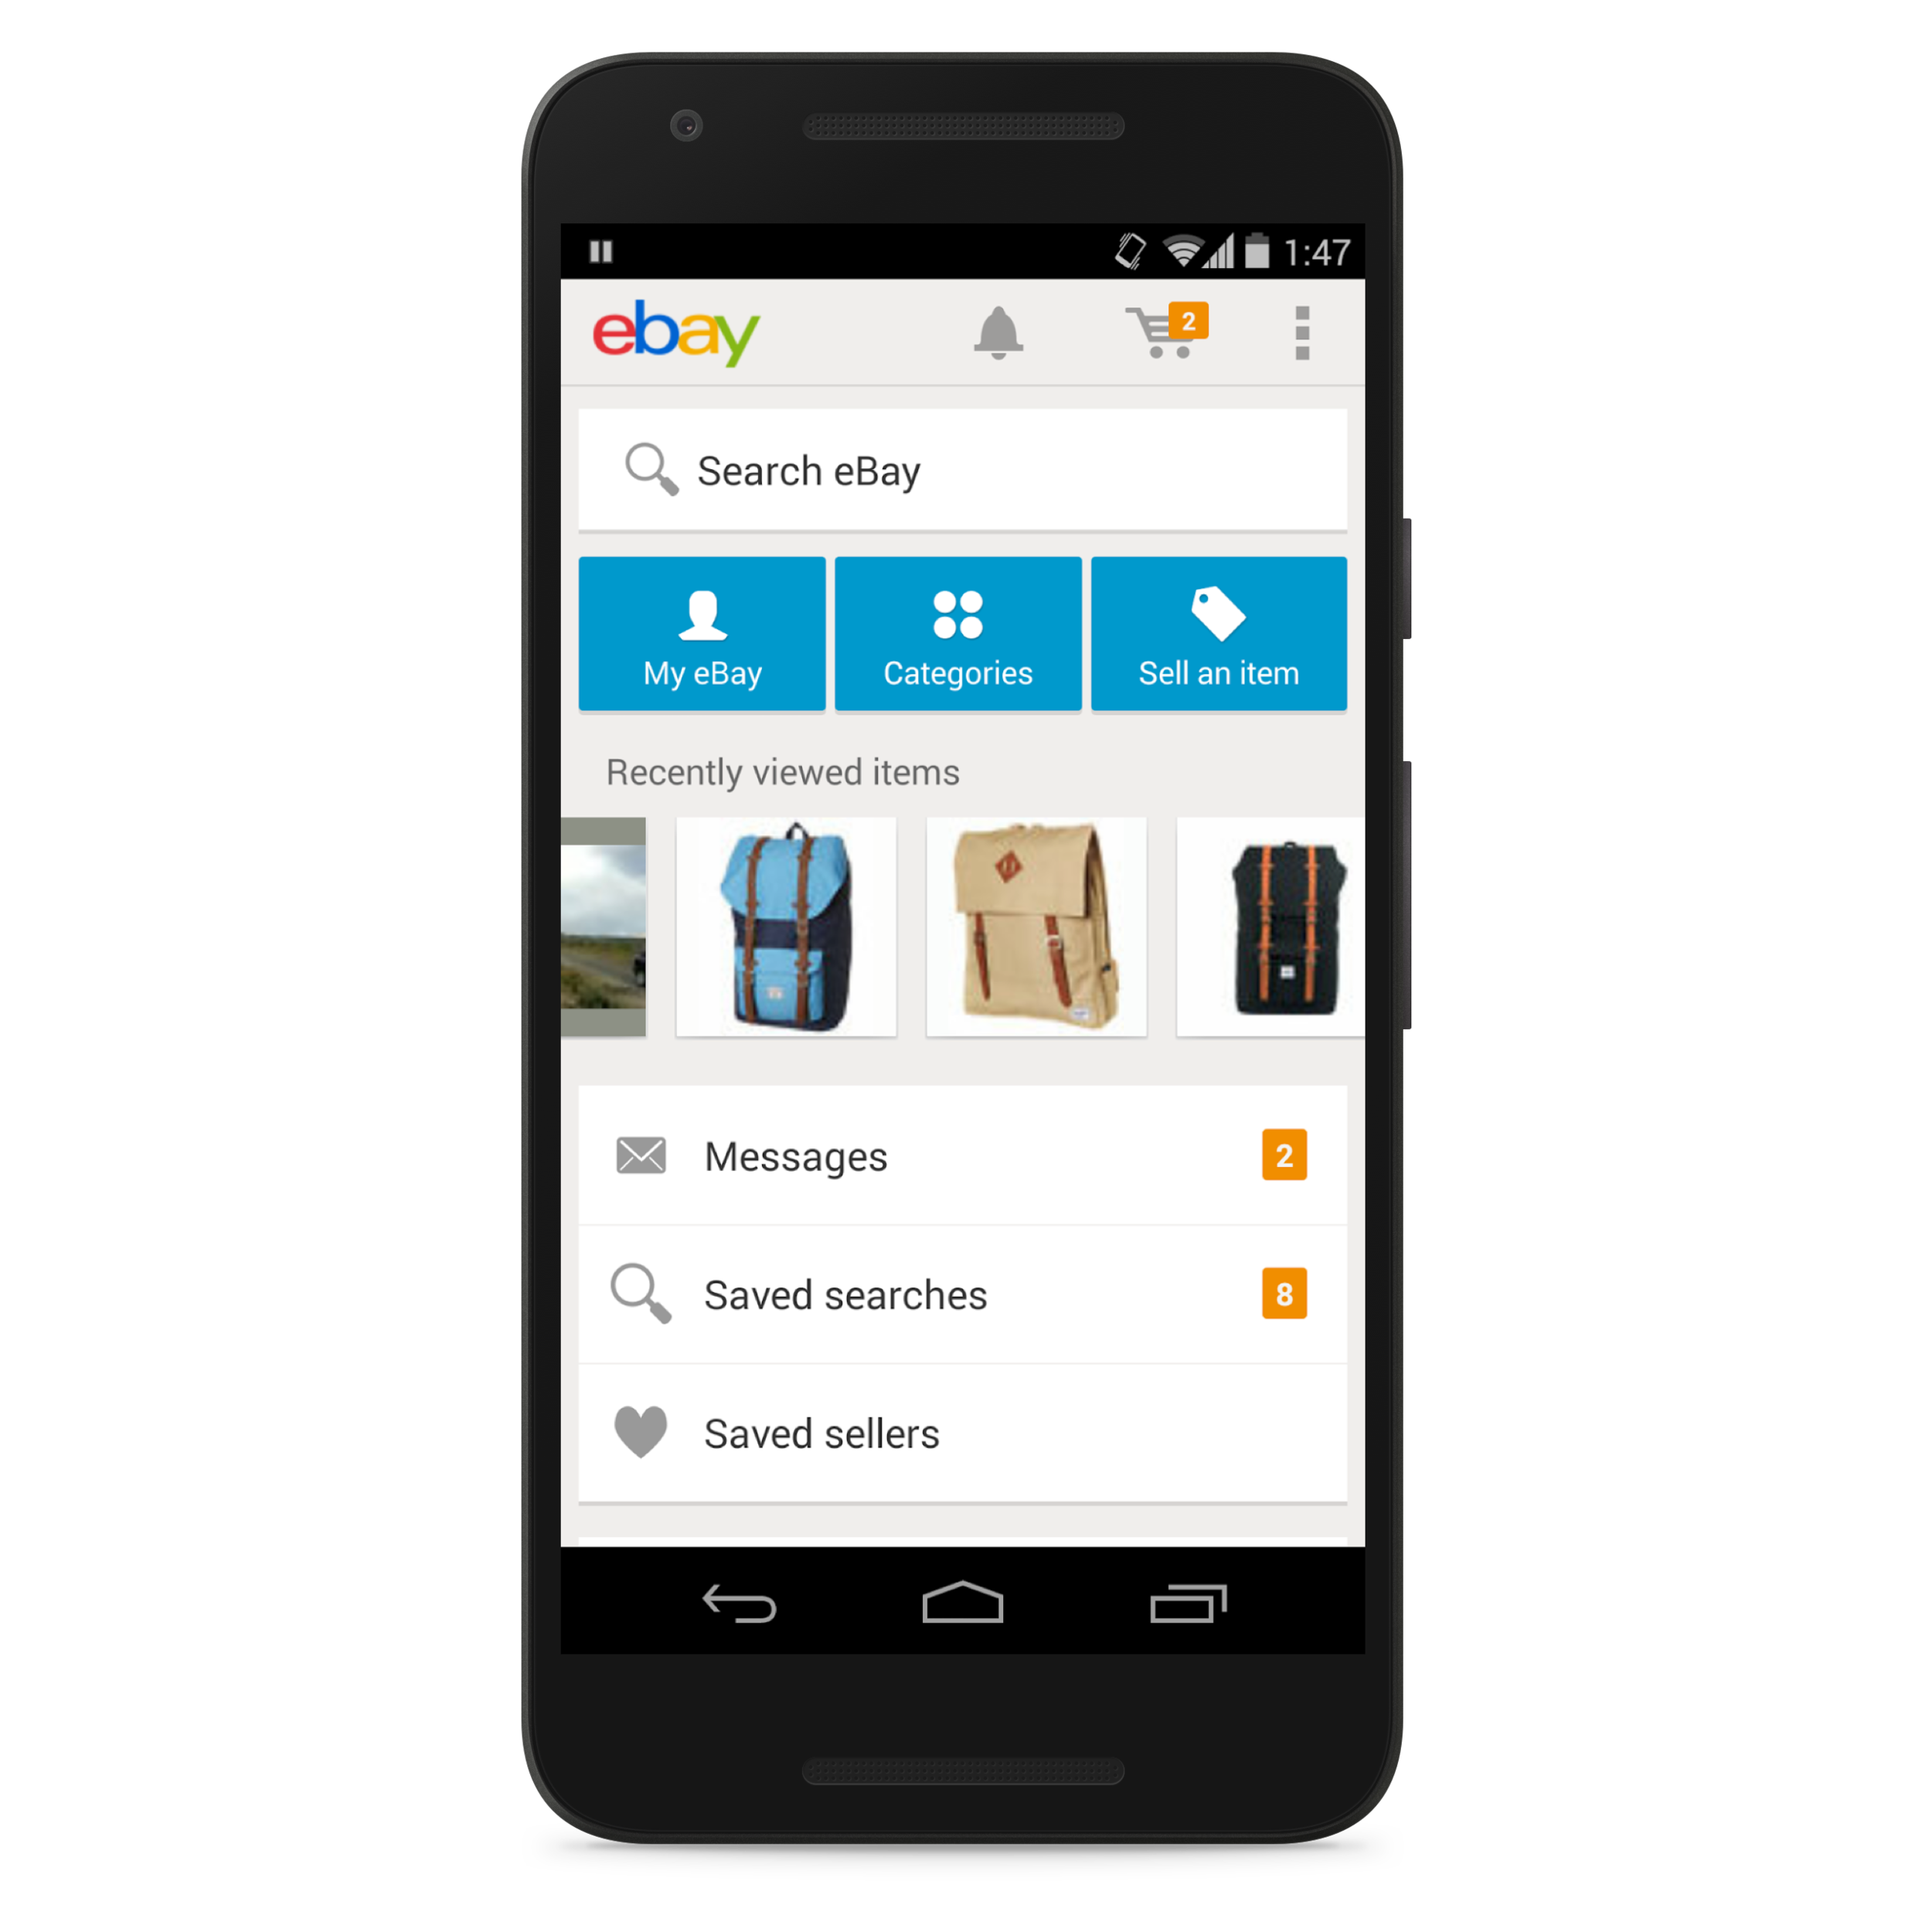 ebay-android-2.9.png